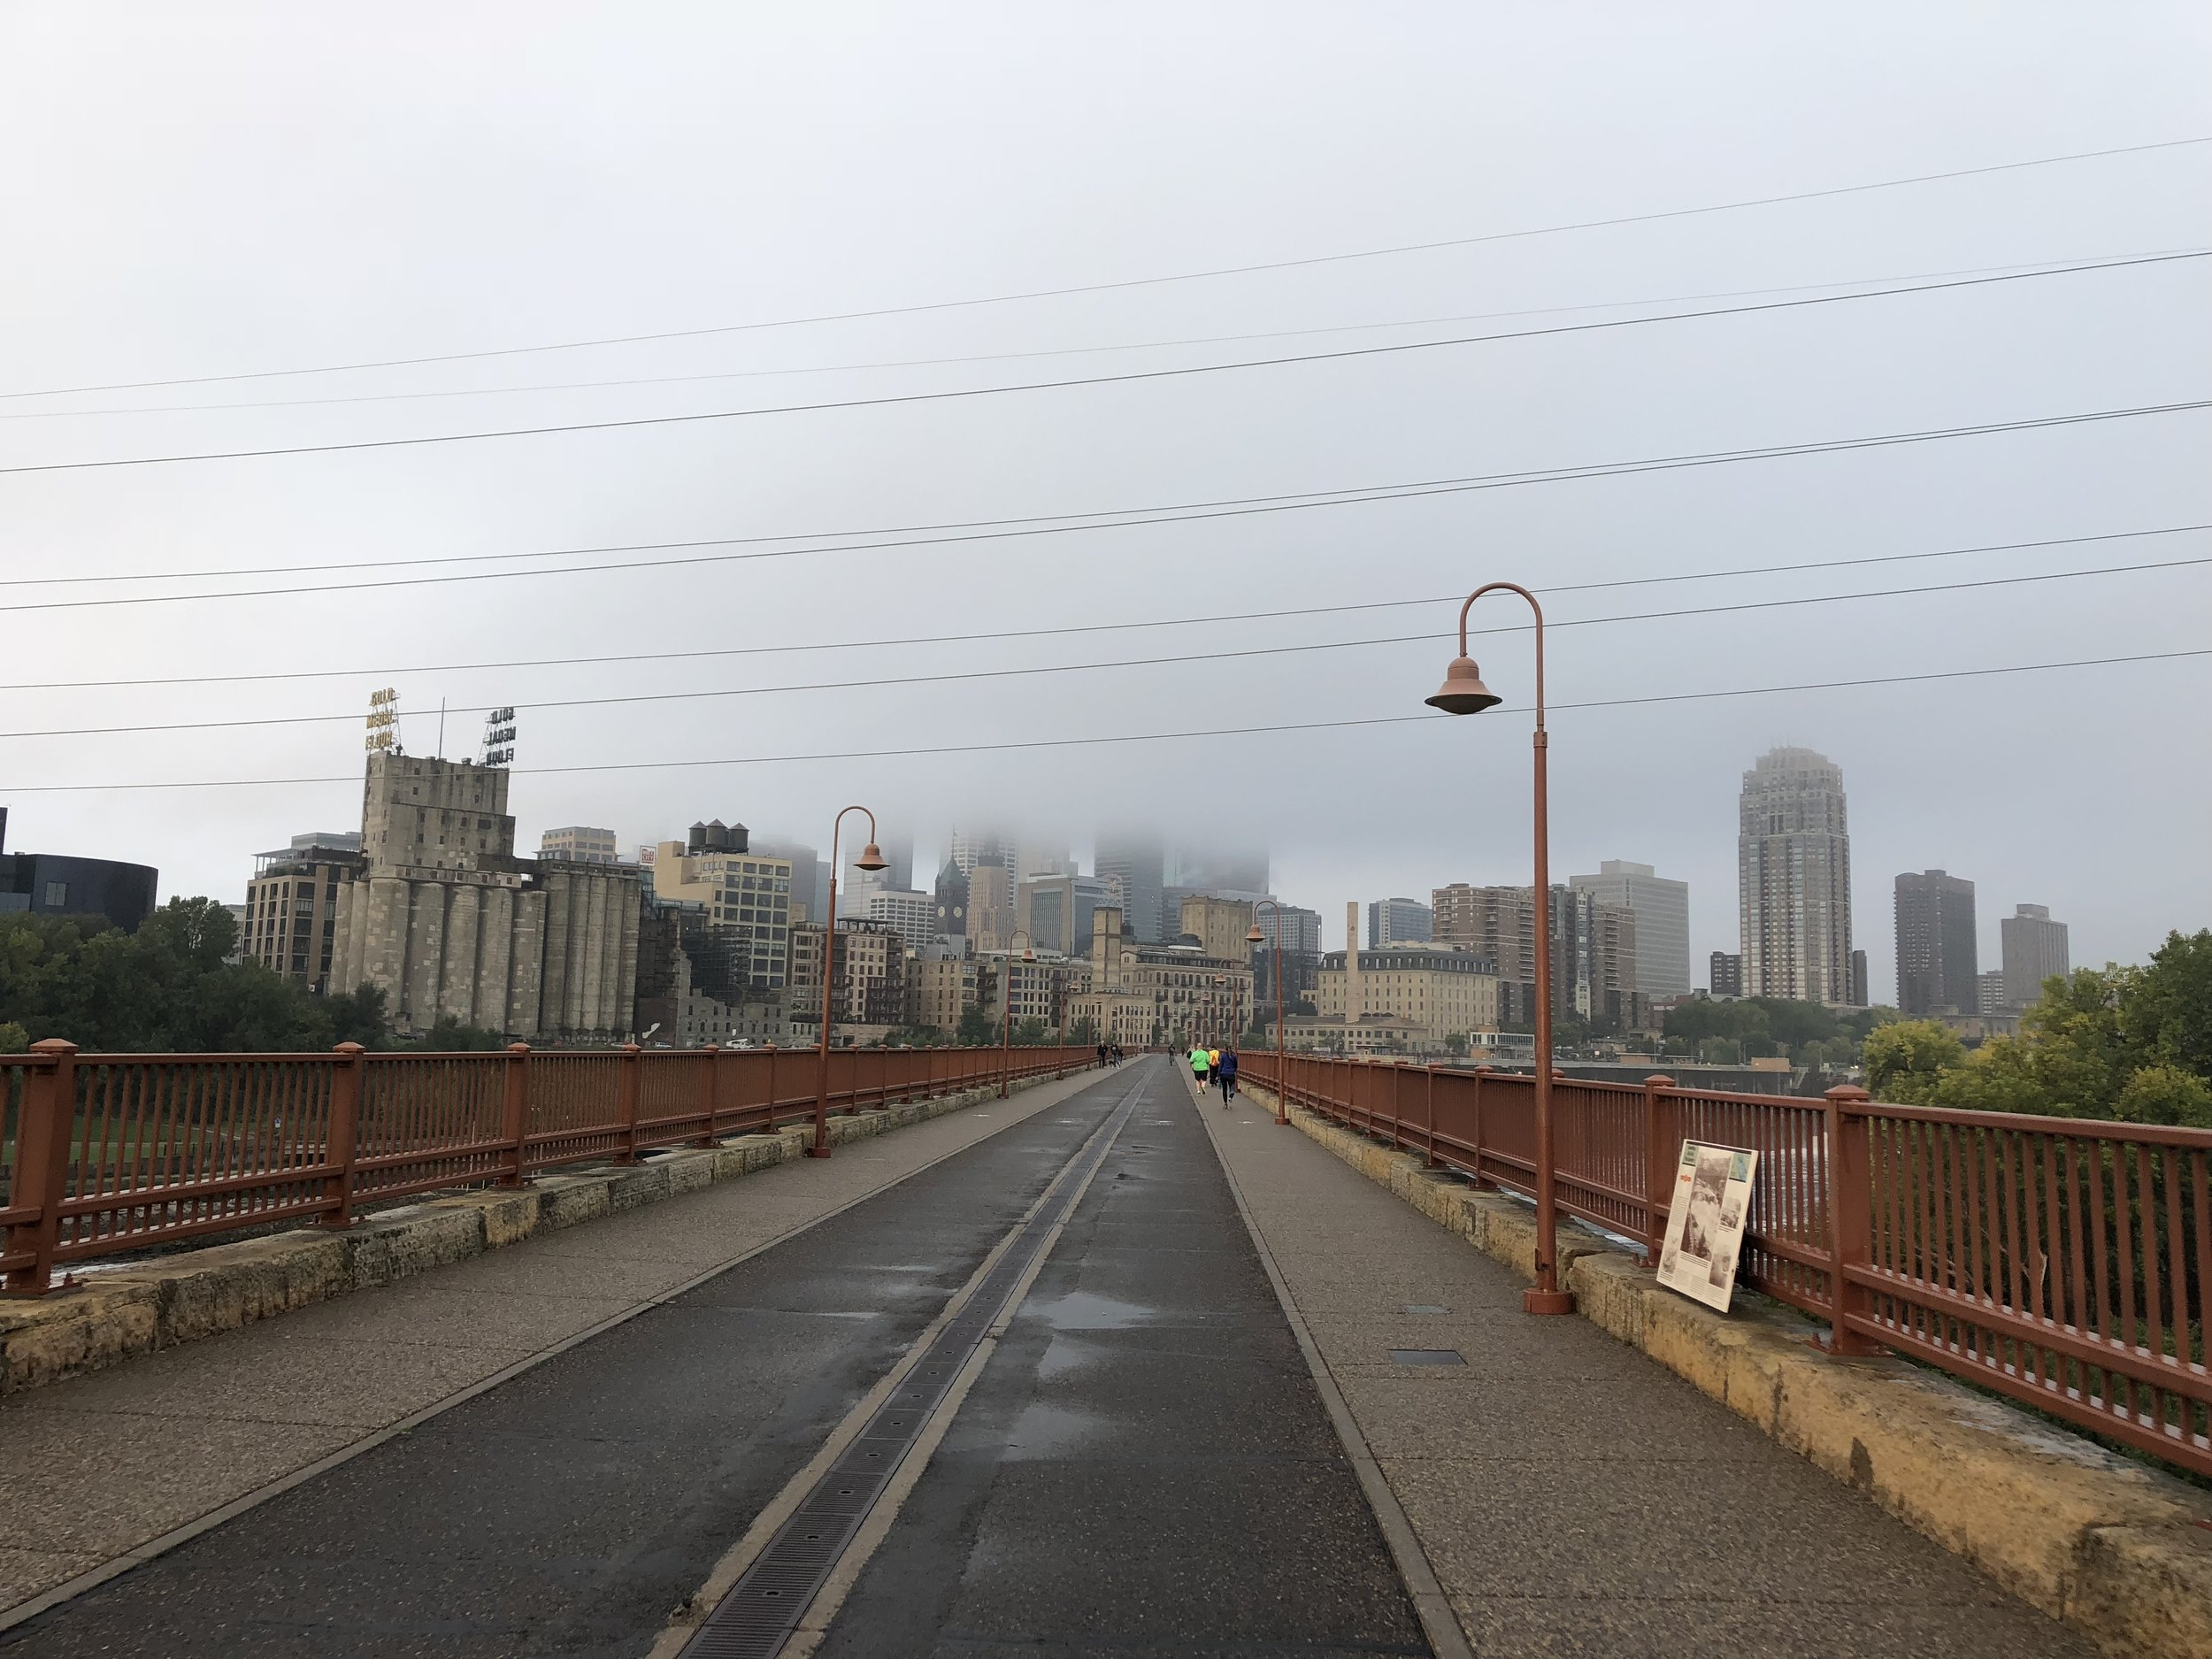 The best part of my daily bike commute, crossing the Stone Arch Bridge